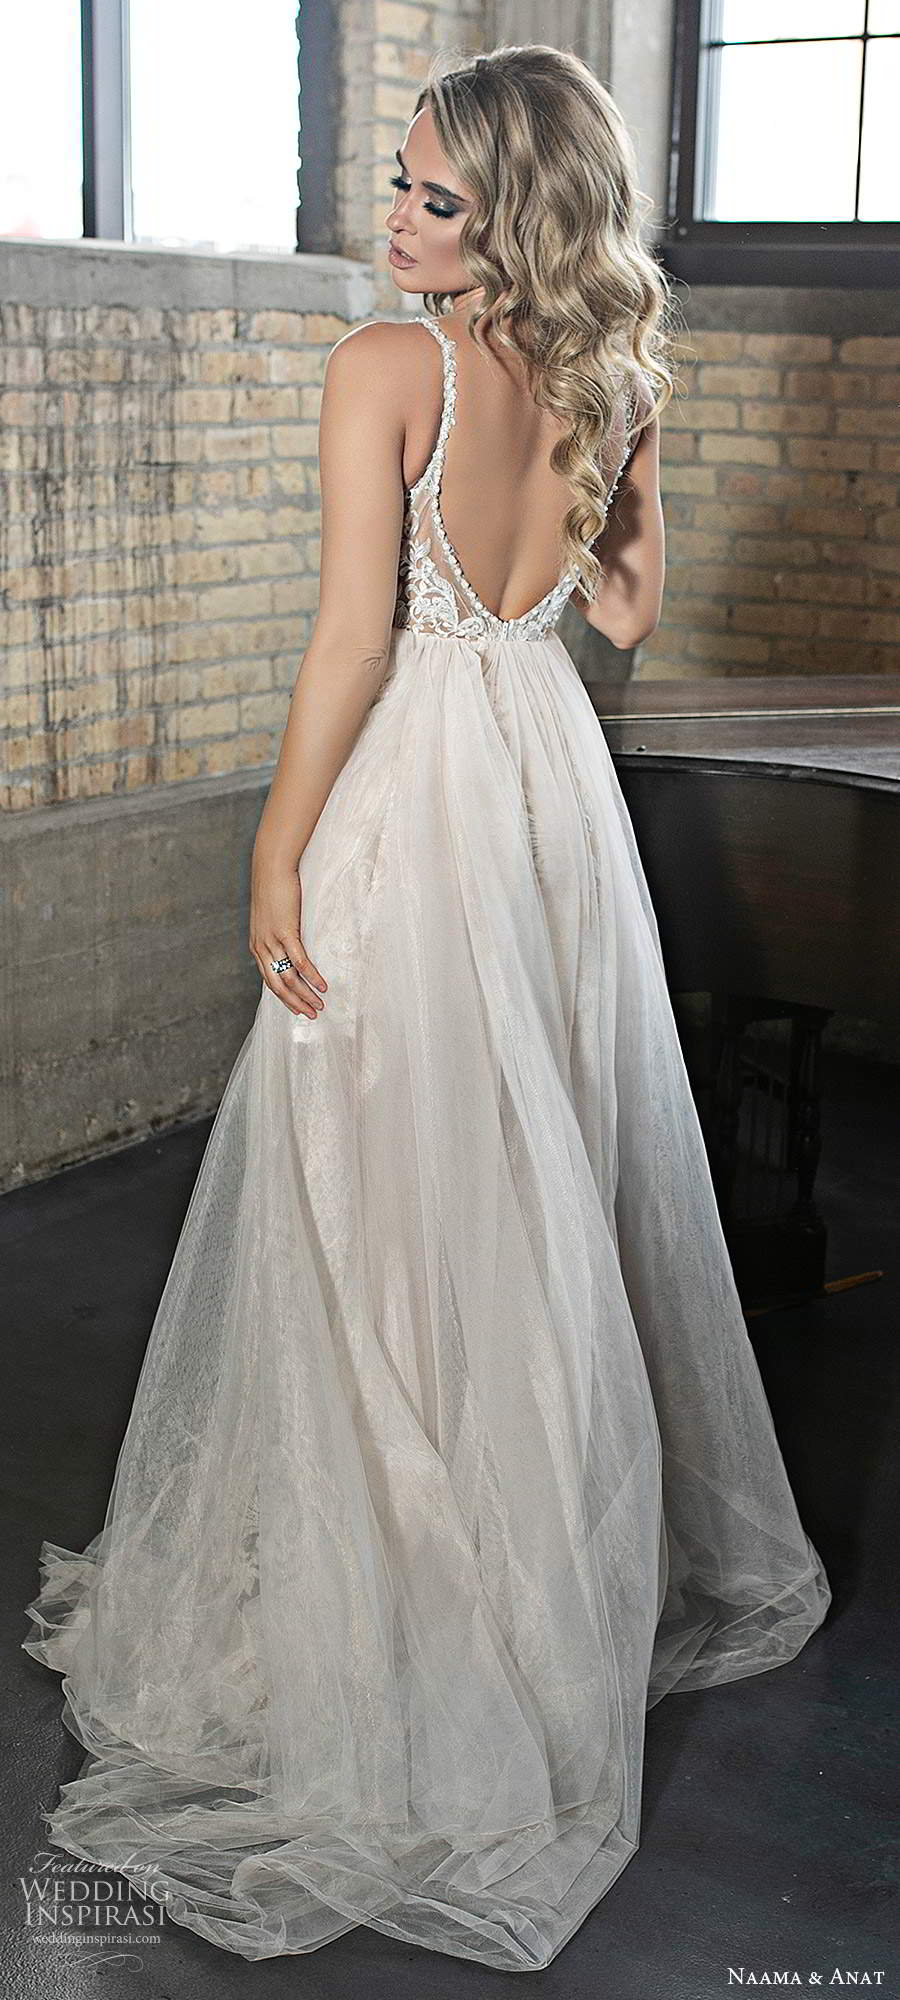 naama and anat 2020 silhouette bridal sleeveless thin straps plunging v neckline embellished lace sheer bodice a line wedding dress slit skirt chapel train (3) bv